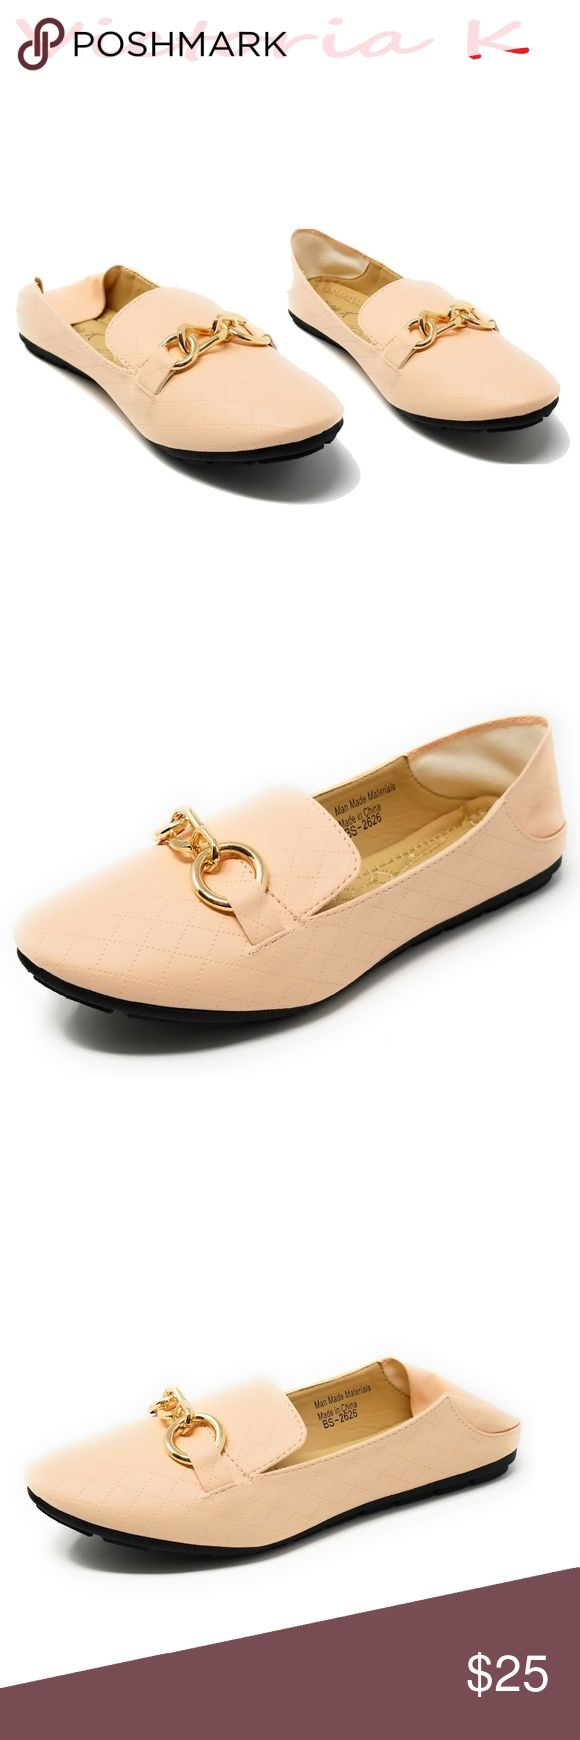 """Women Ballerina Flats / Mules, BS-2626, Pink Brand new super popular stitched woman slippers that can be worn as mules with the back down. Extra soft insoles. Textured rubber outer sole for traction. Cute horse bit buckle. 100% man made PU vegan leather. Measurements: sizes 6 through 8 are true to size. Sizes 8.5 - 11 run small. Standard 3 inch width. Size 8 measures 9.5 inches, sz 8.5 = 9 3/4"""", sz 9 = 10"""", sz 10 = 10.5"""", size 11 fits a true size 9.5 wearer. Slip on these loafers and make a…"""